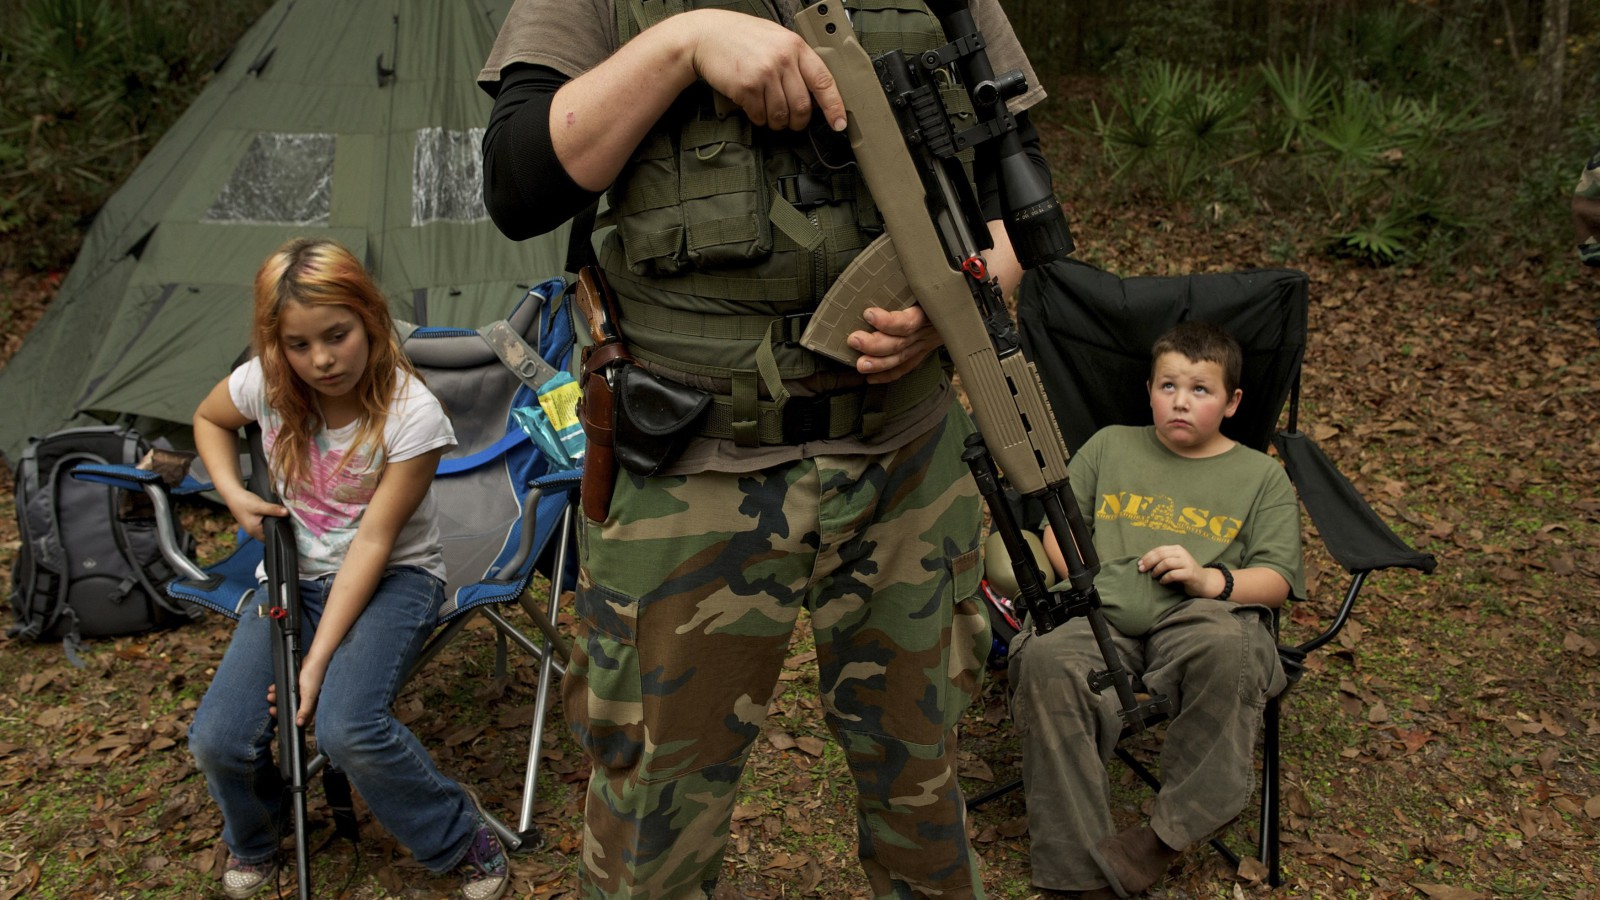 """Members of the North Florida Survival Group wait with their rifles before heading out to perform enemy contact drills during a field training exercise in Old Town, Florida, December 8, 2012. The group trains children and adults alike to handle weapons and survive in the wild. The group passionately supports the right of U.S. citizens to bear arms and its website states that it aims to teach """"patriots to survive in order to protect and defend our Constitution against all enemy threats"""". Picture taken December 8, 2012.   REUTERS/Brian Blanco  (UNITED STATES - Tags: SOCIETY POLITICS TPX IMAGES OF THE DAY)  ATTENTION EDITORS: PICTURE 19 OF 20 FOR PACKAGE 'TRAINING CHILD SURVIVALISTS' SEARCH 'FLORIDA SURVIVAL' FOR ALL IMAGES - RTR3E4D6"""